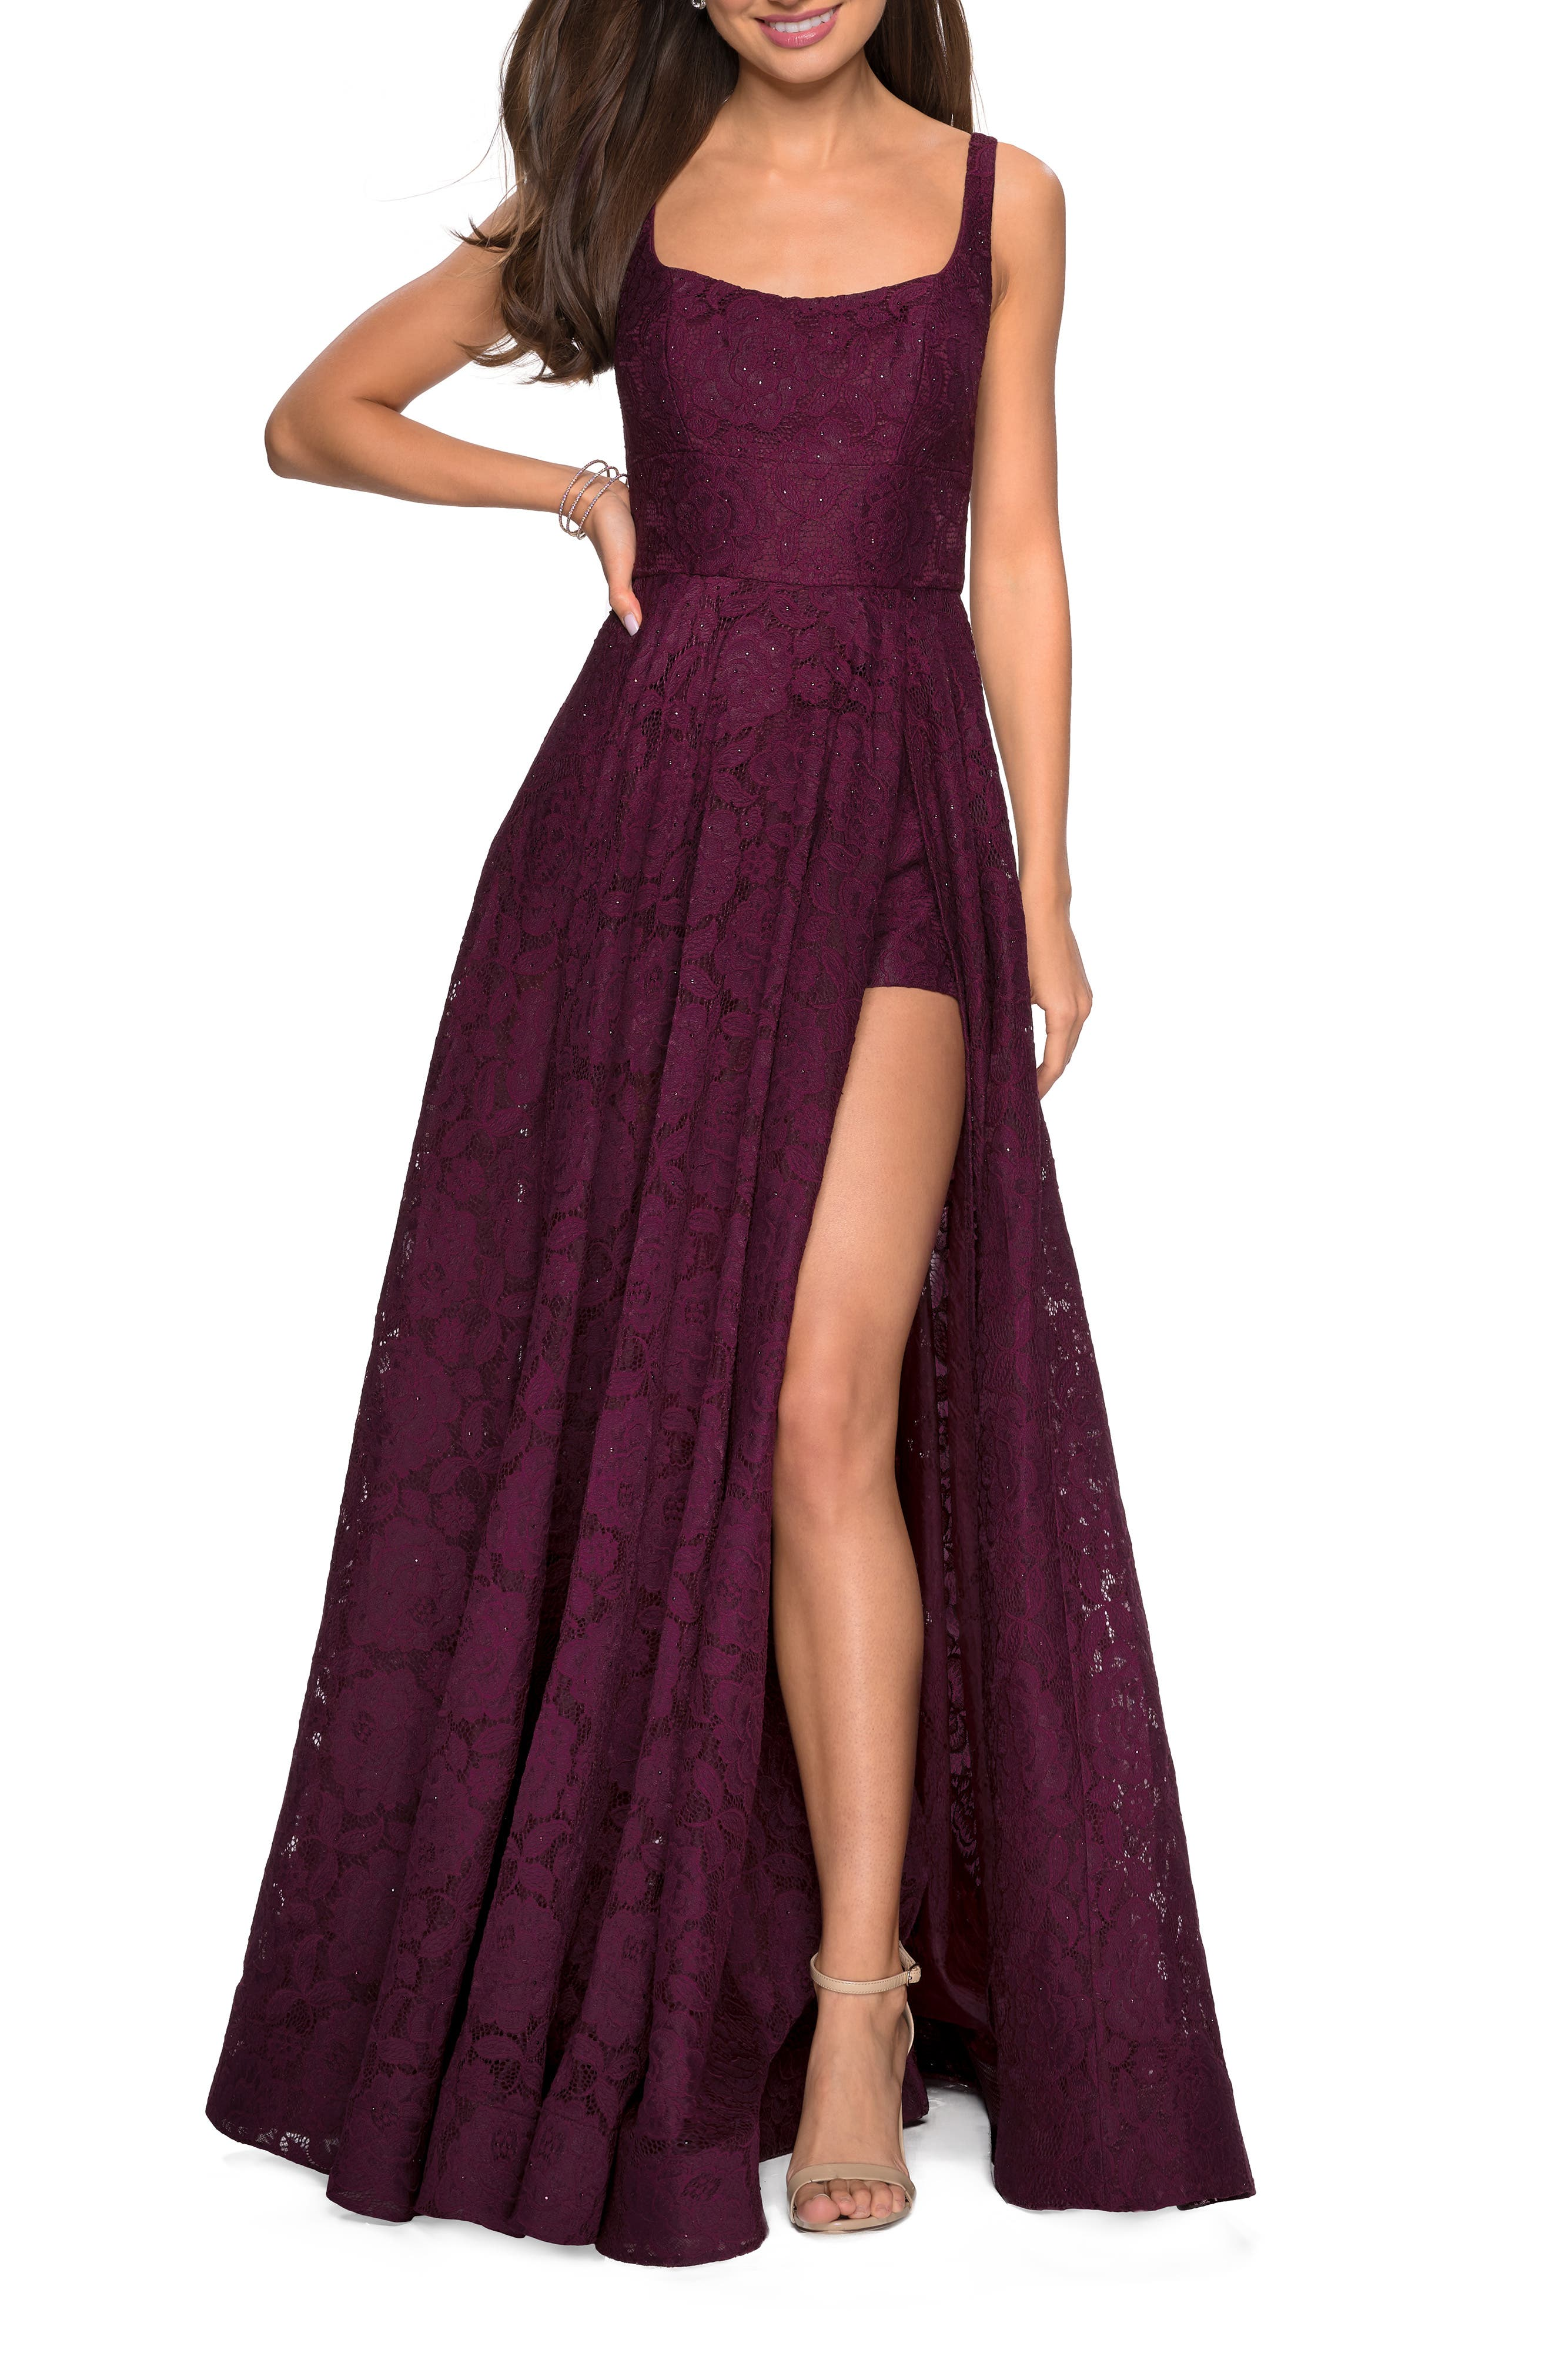 La Femme Front Slit Lace Evening Dress, Red